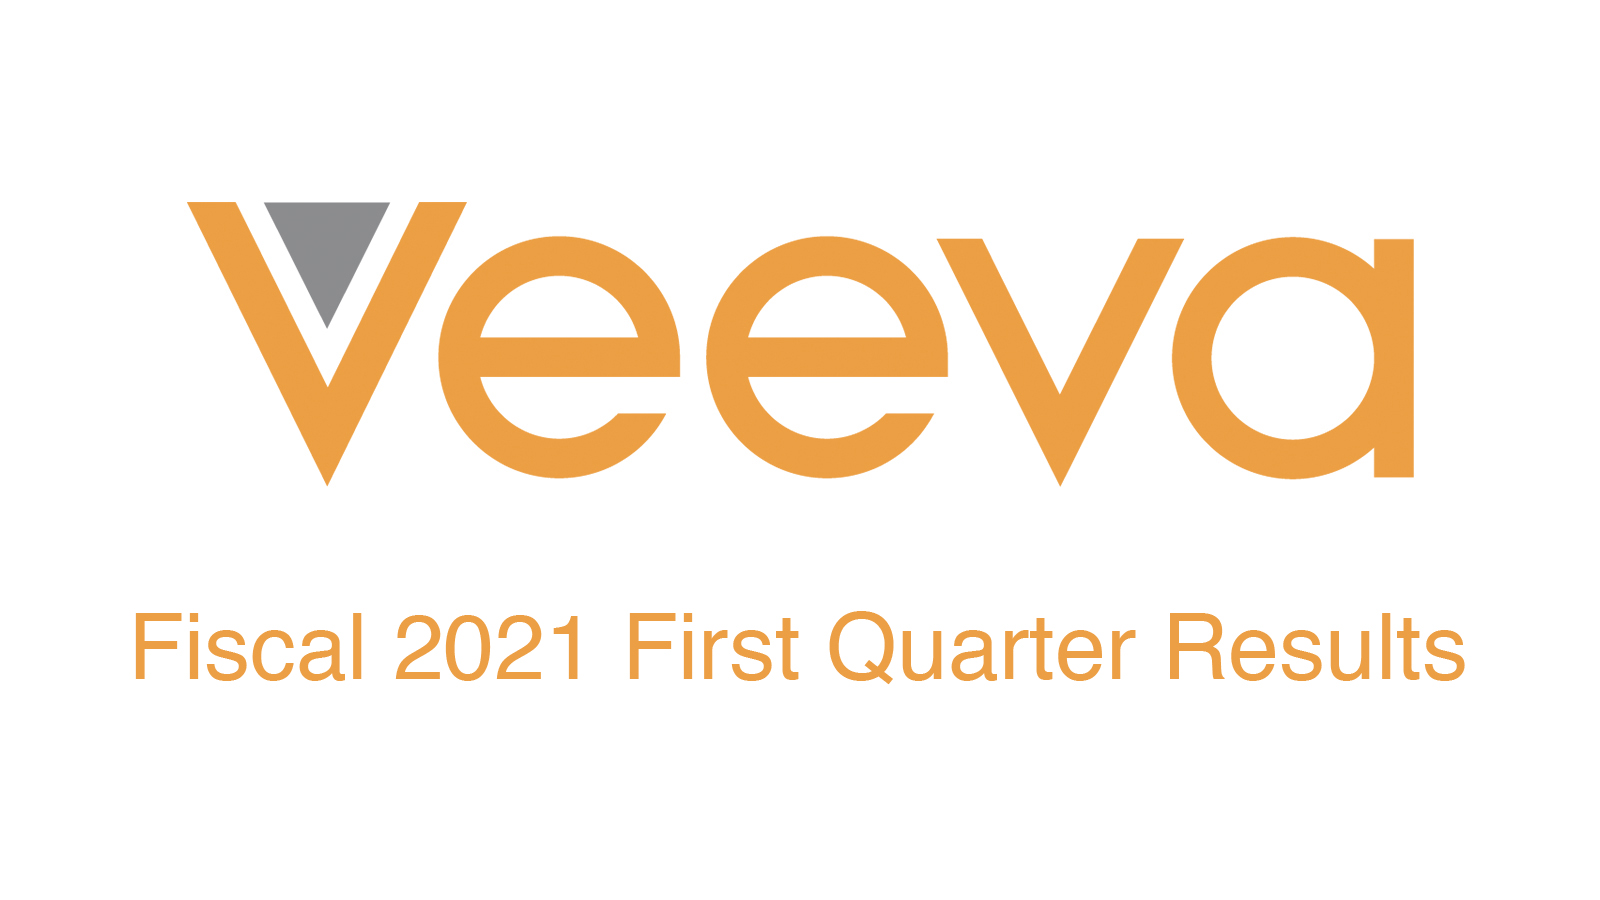 Veeva Announces Fiscal 2021 First Quarter Results